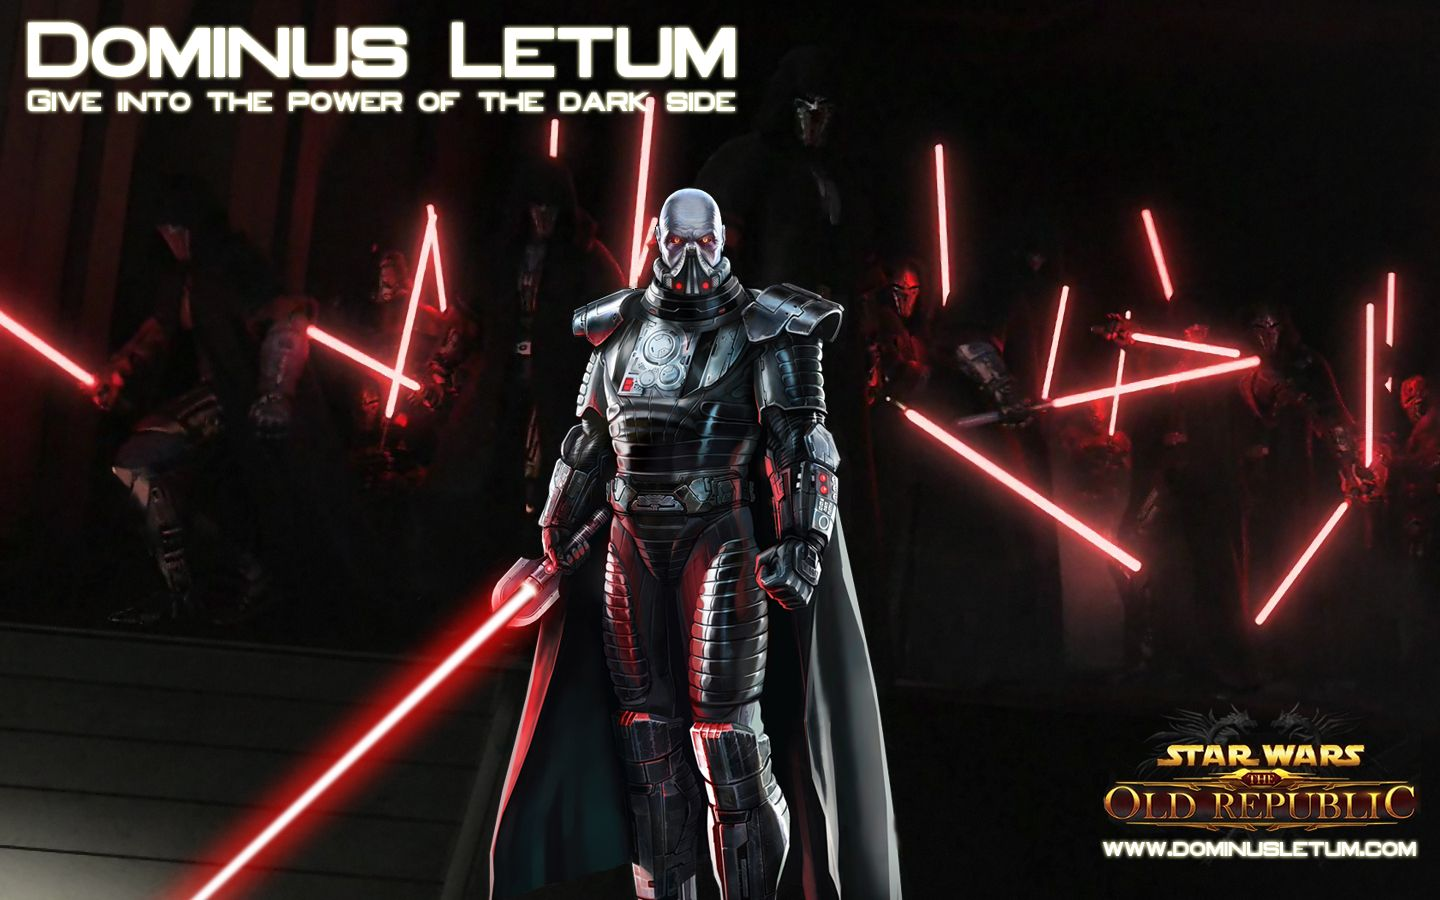 Dark Side The Old Republic Star Wars The Old Star Wars